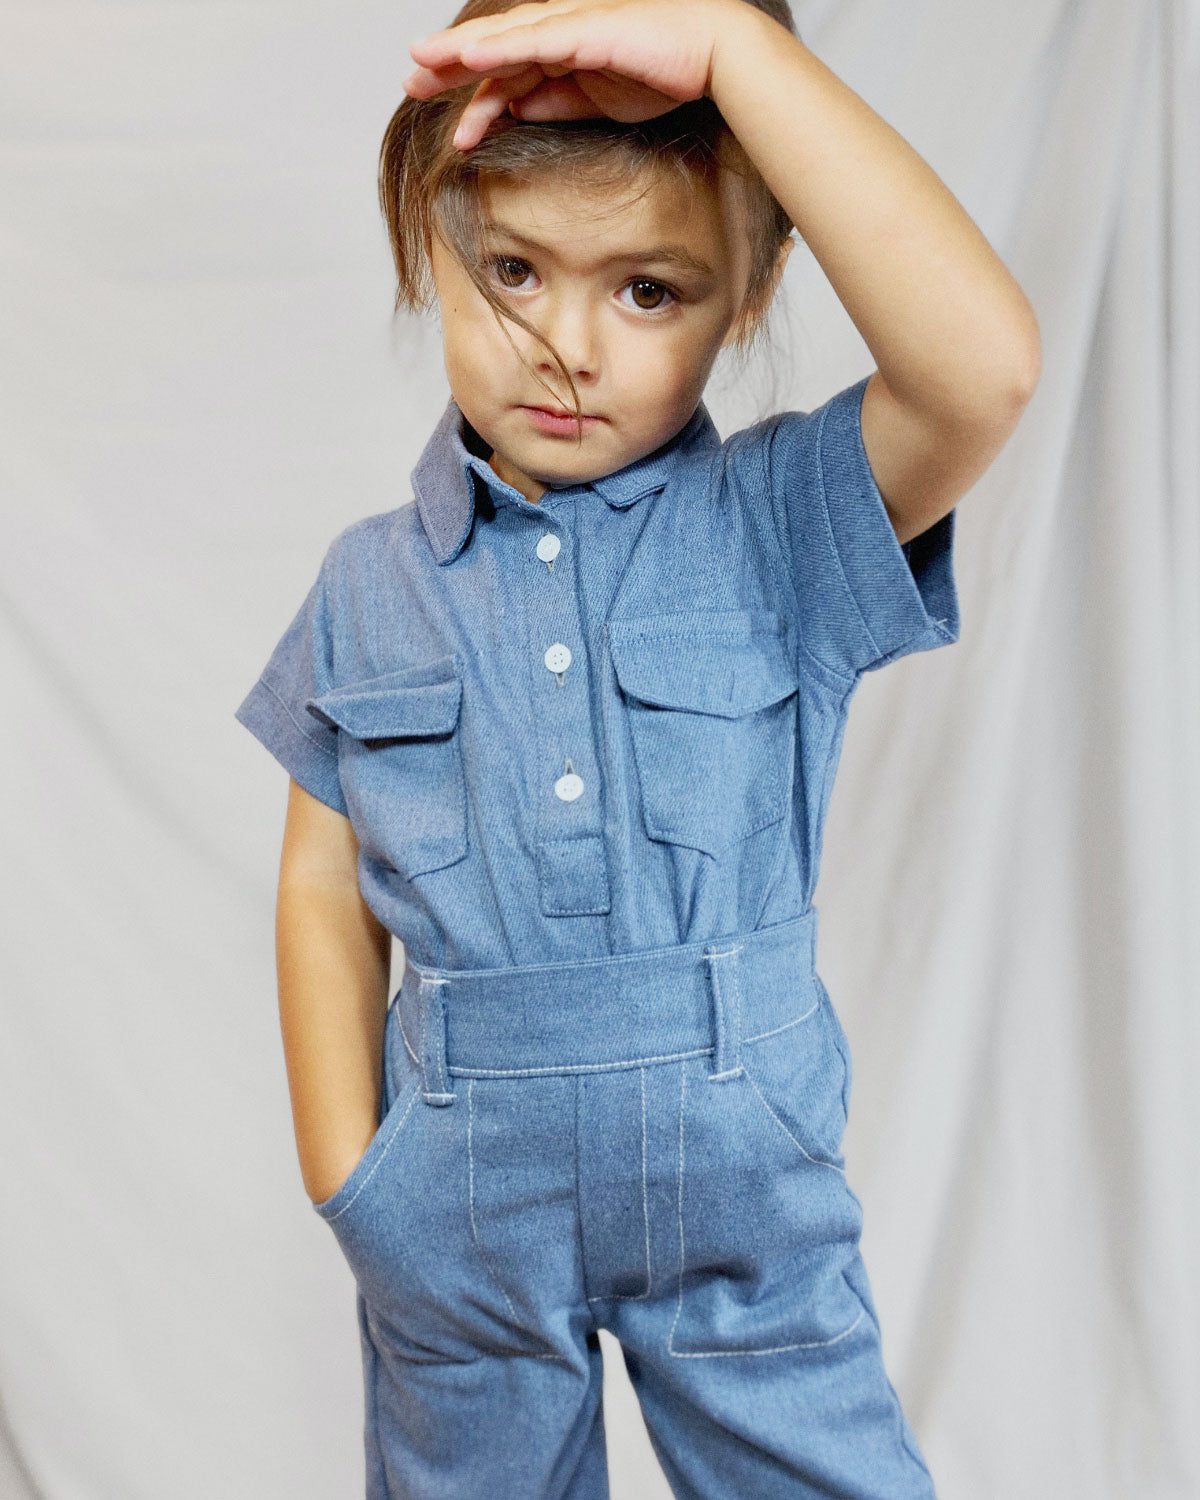 The Two pieces denim set is unisex perfect for toddlers and kids. Jumpsuit looking